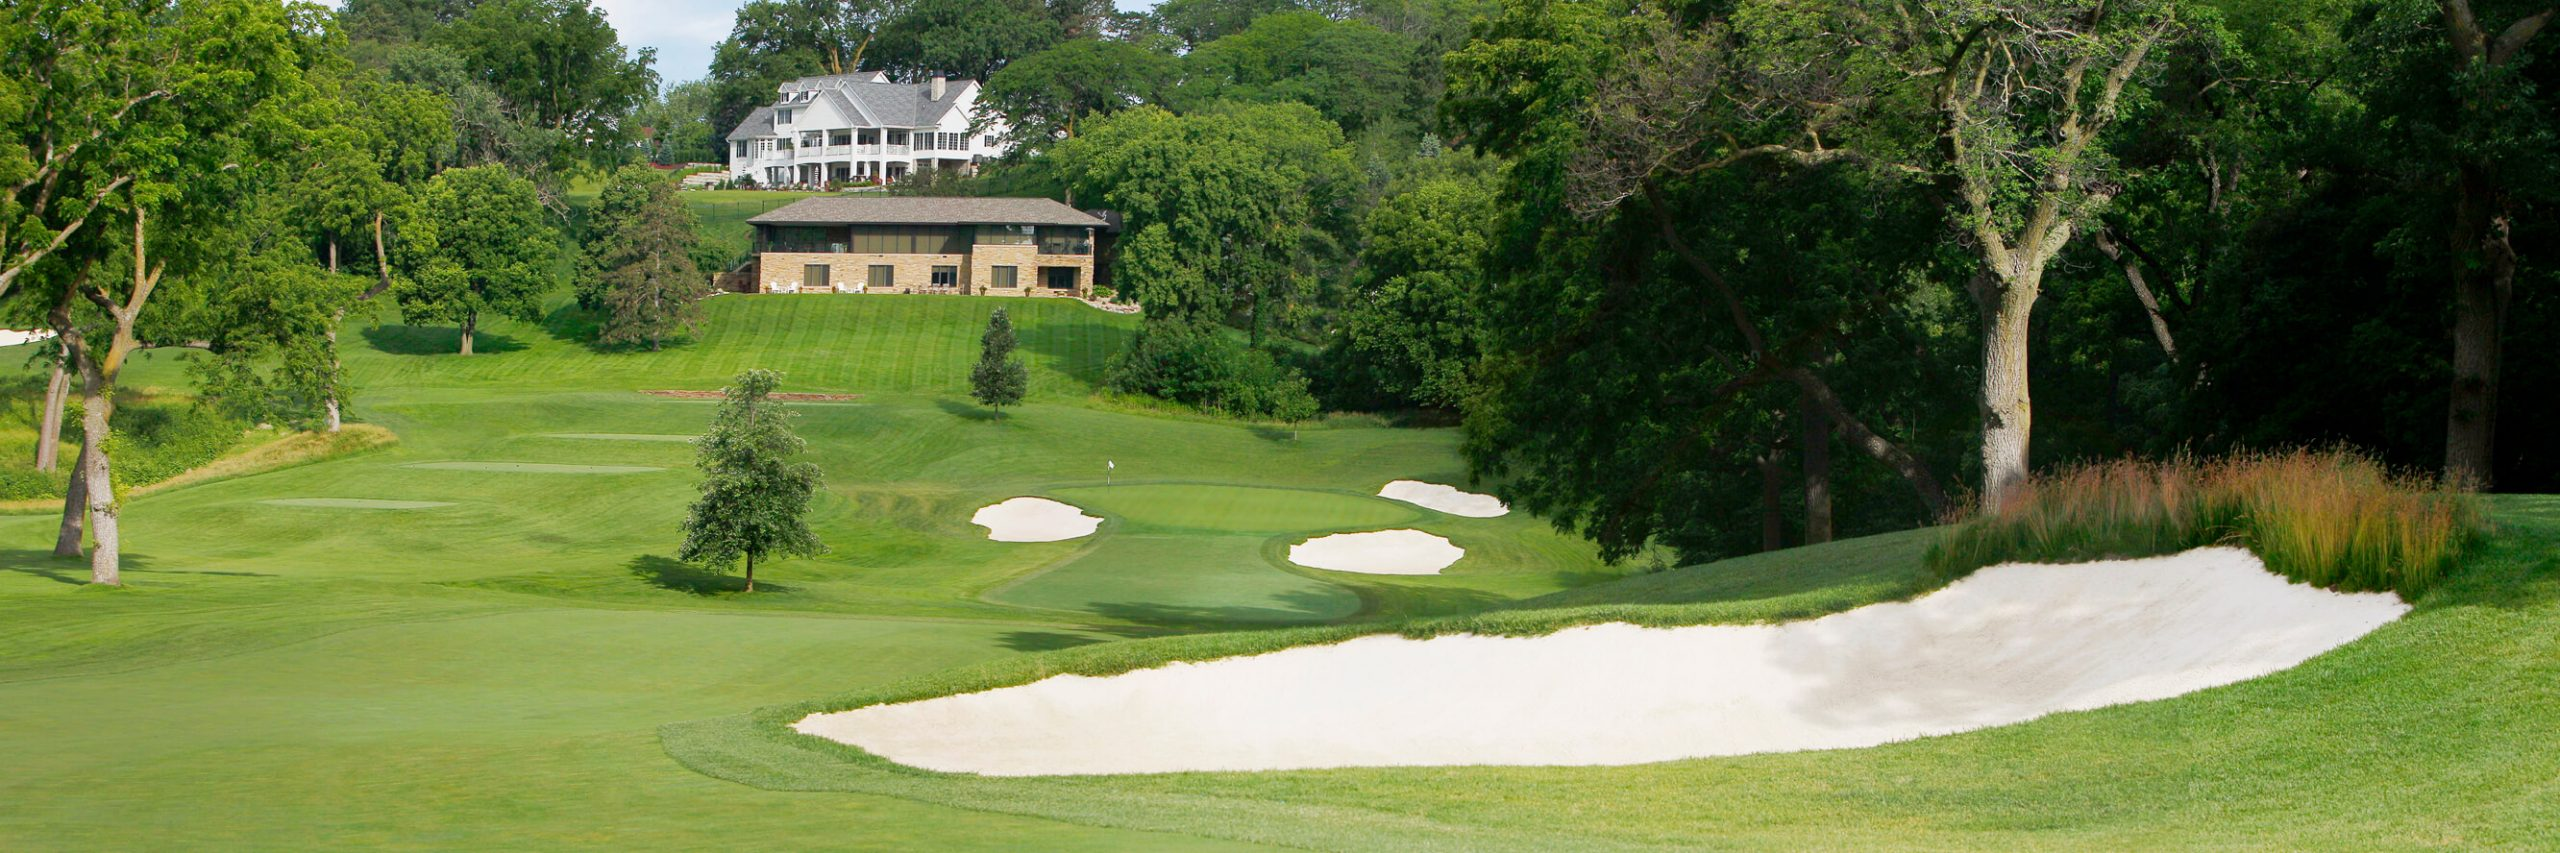 Golf Course Image - Omaha Country Club No. 6